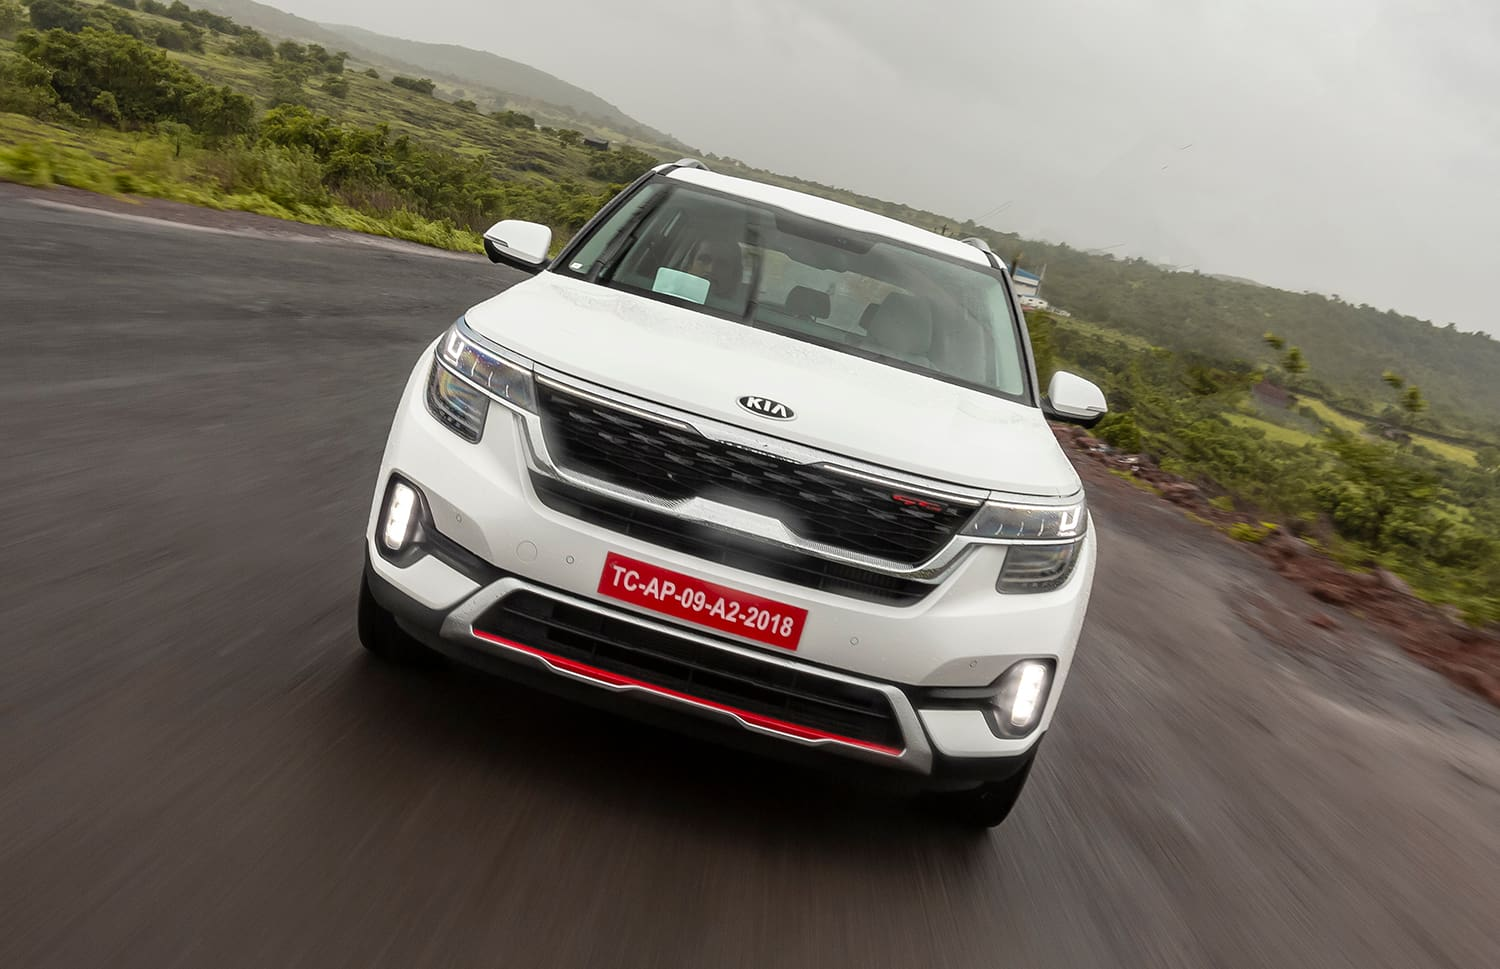 Fully-loaded Kia Seltos GT-Line Diesel & Petrol Automatic Prices To Be Announced Soon